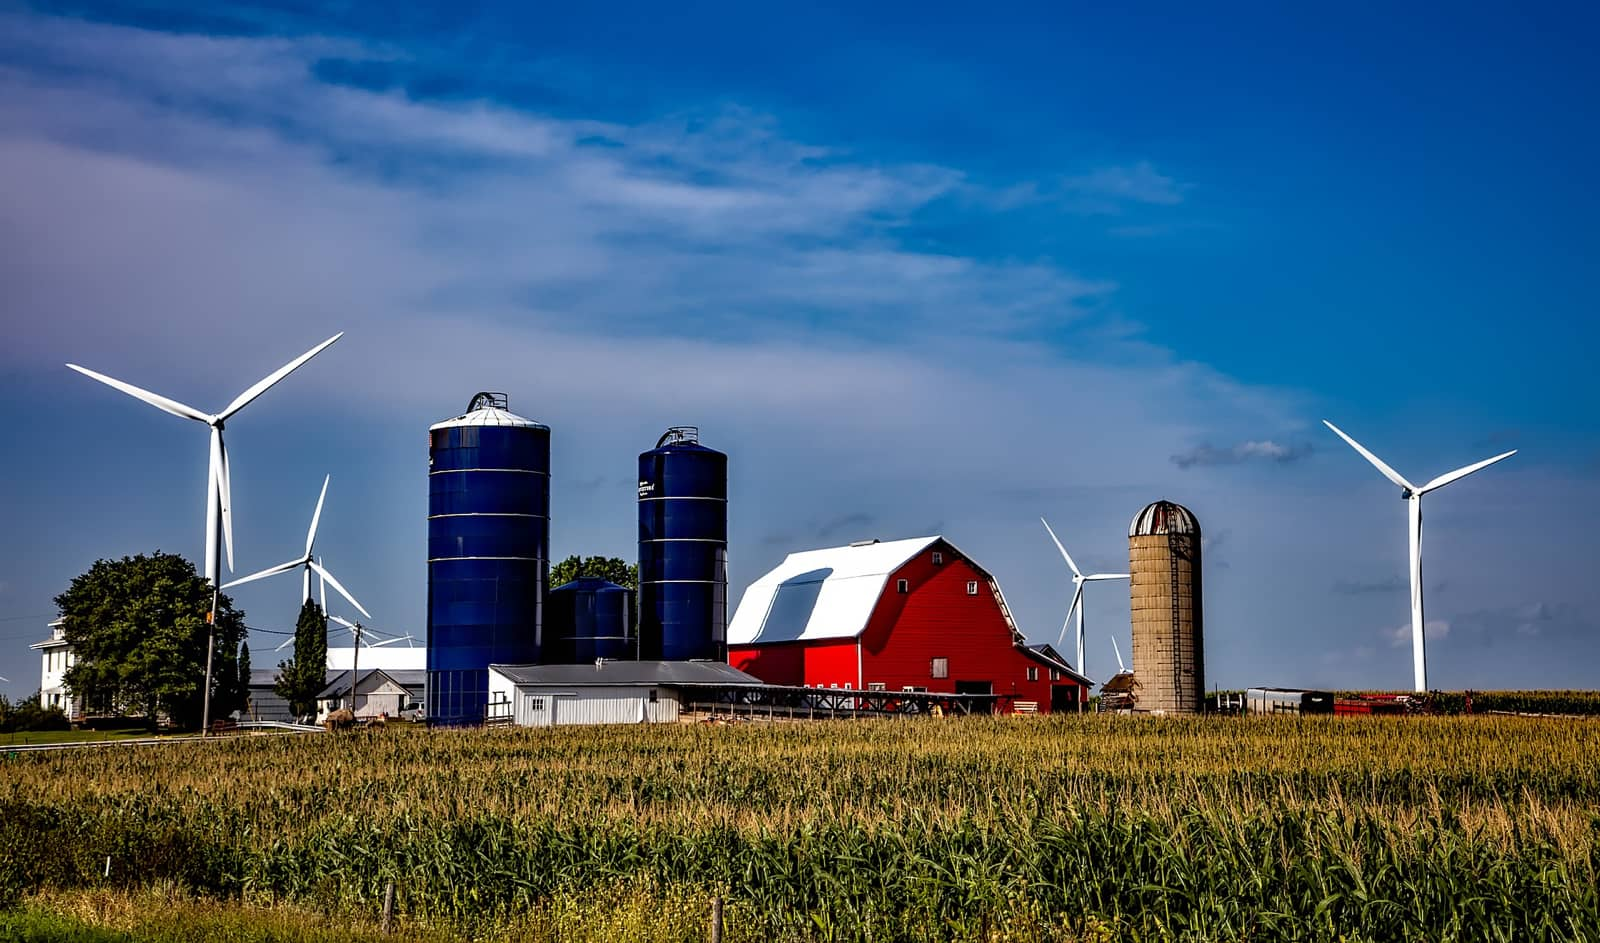 Image of a farm in Iowa. Maybe a new Apple data center could be next door?